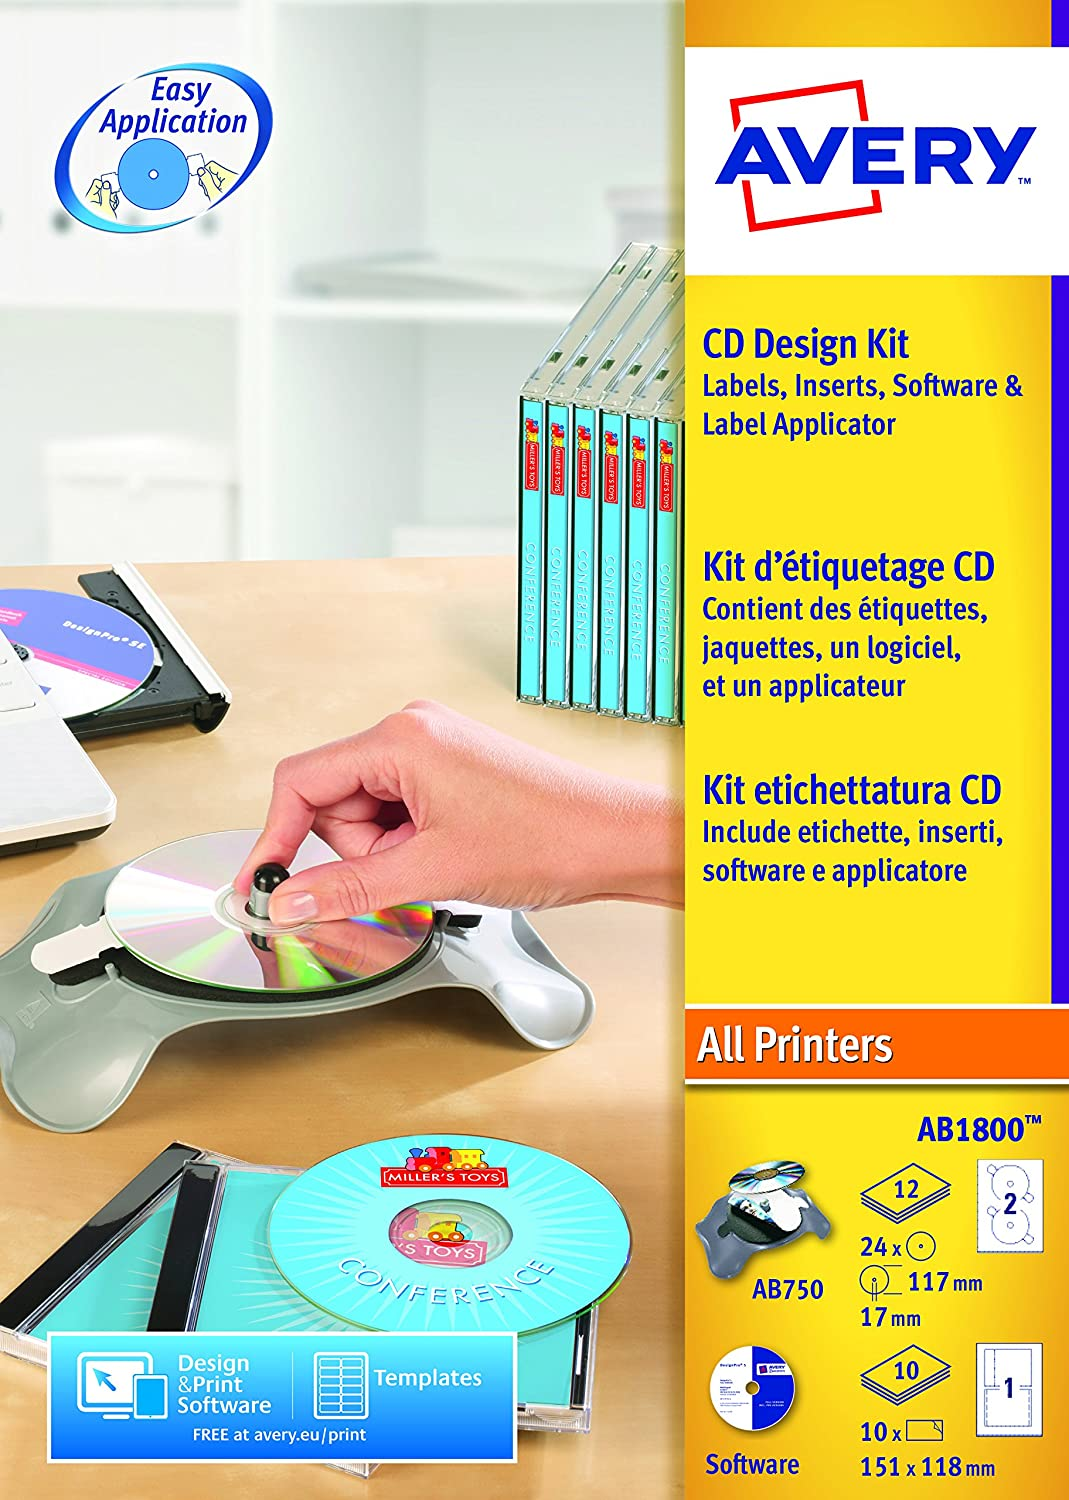 Avery AB1800 CD Design Kit with Applicator, Software Disc, Printable ...